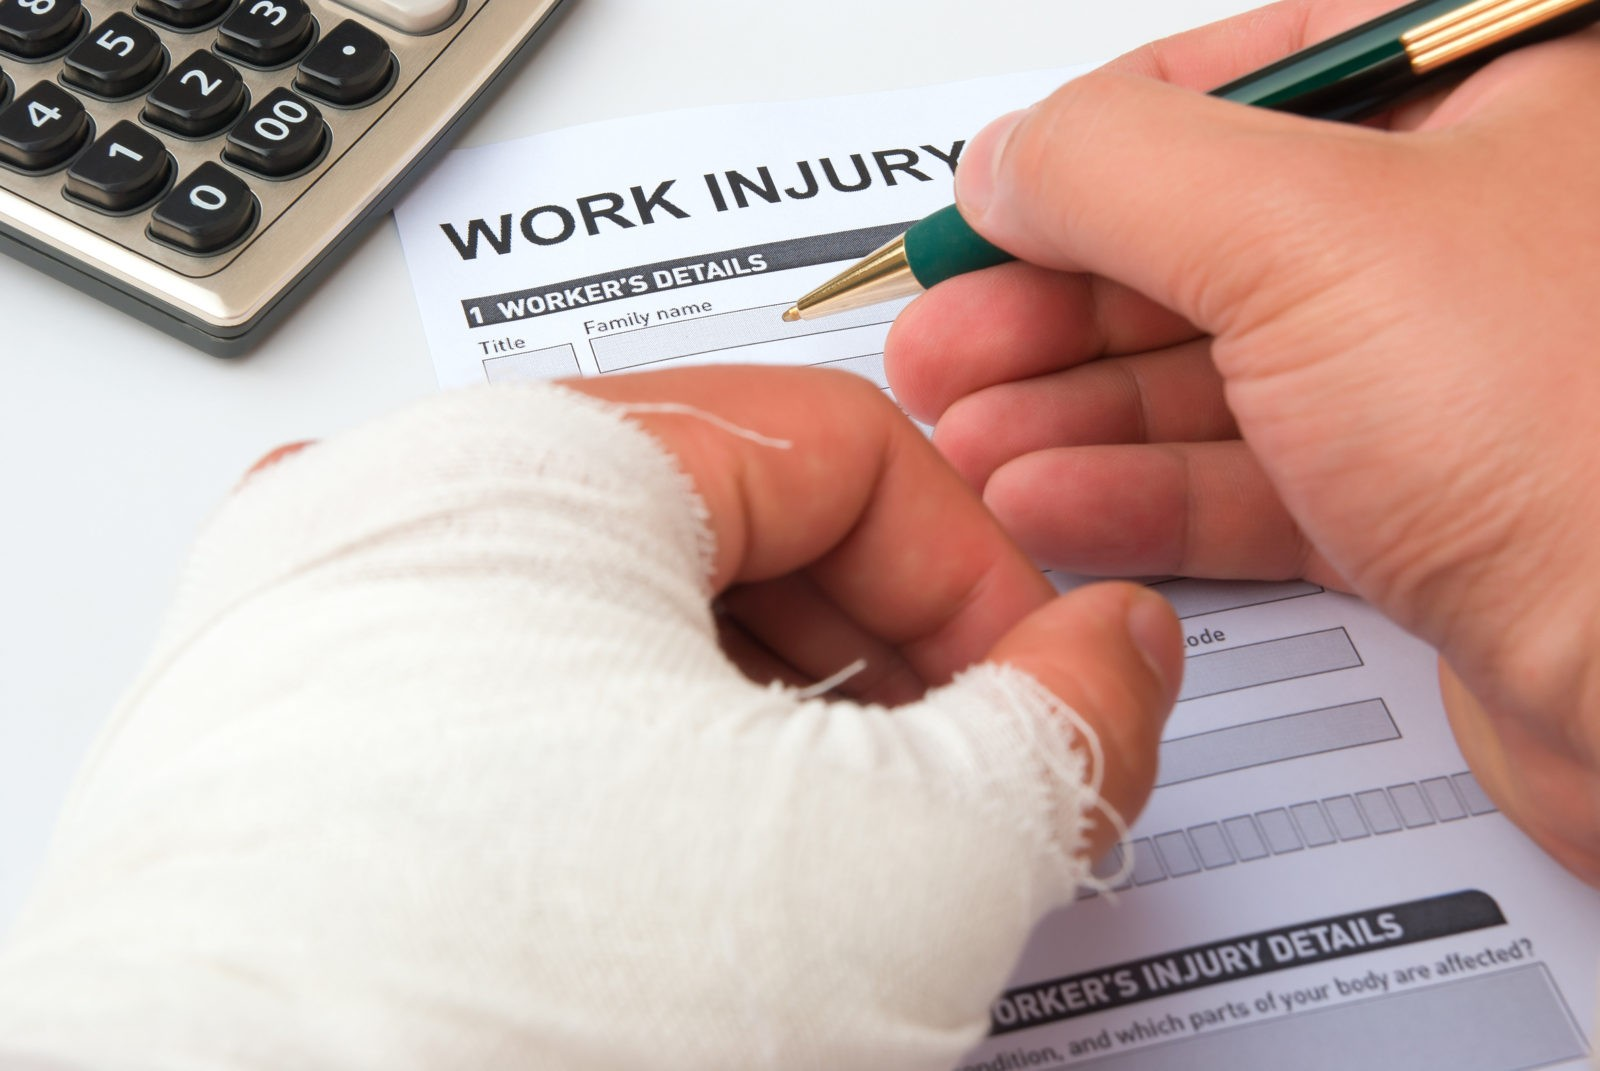 Workers Compensation 101 for Your Small Business